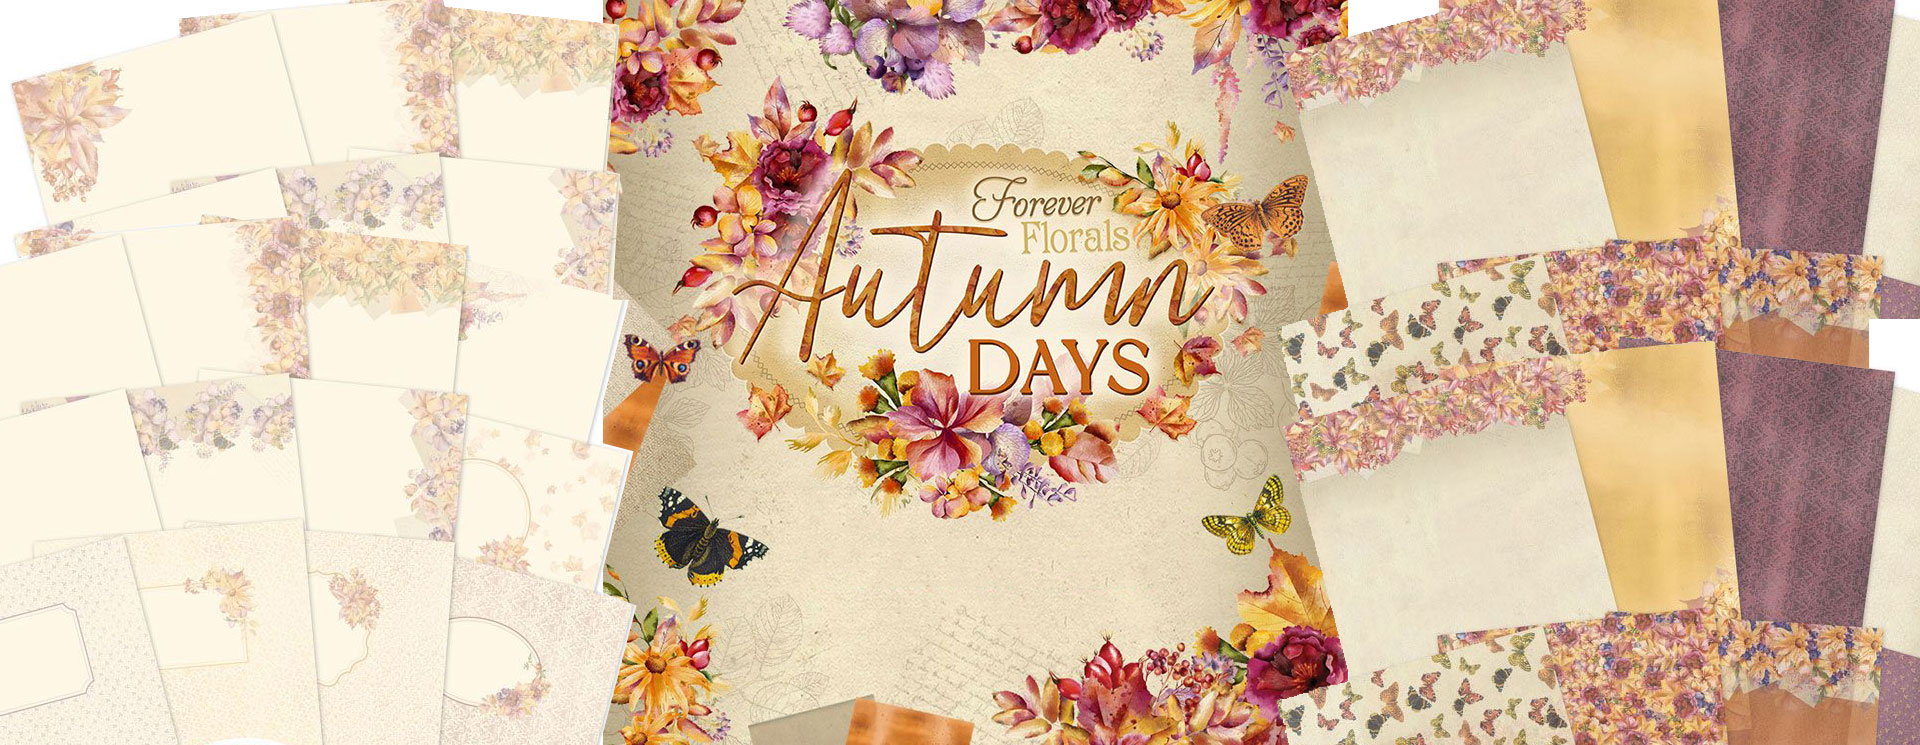 Hunkydory Forever Florals Autumn Days